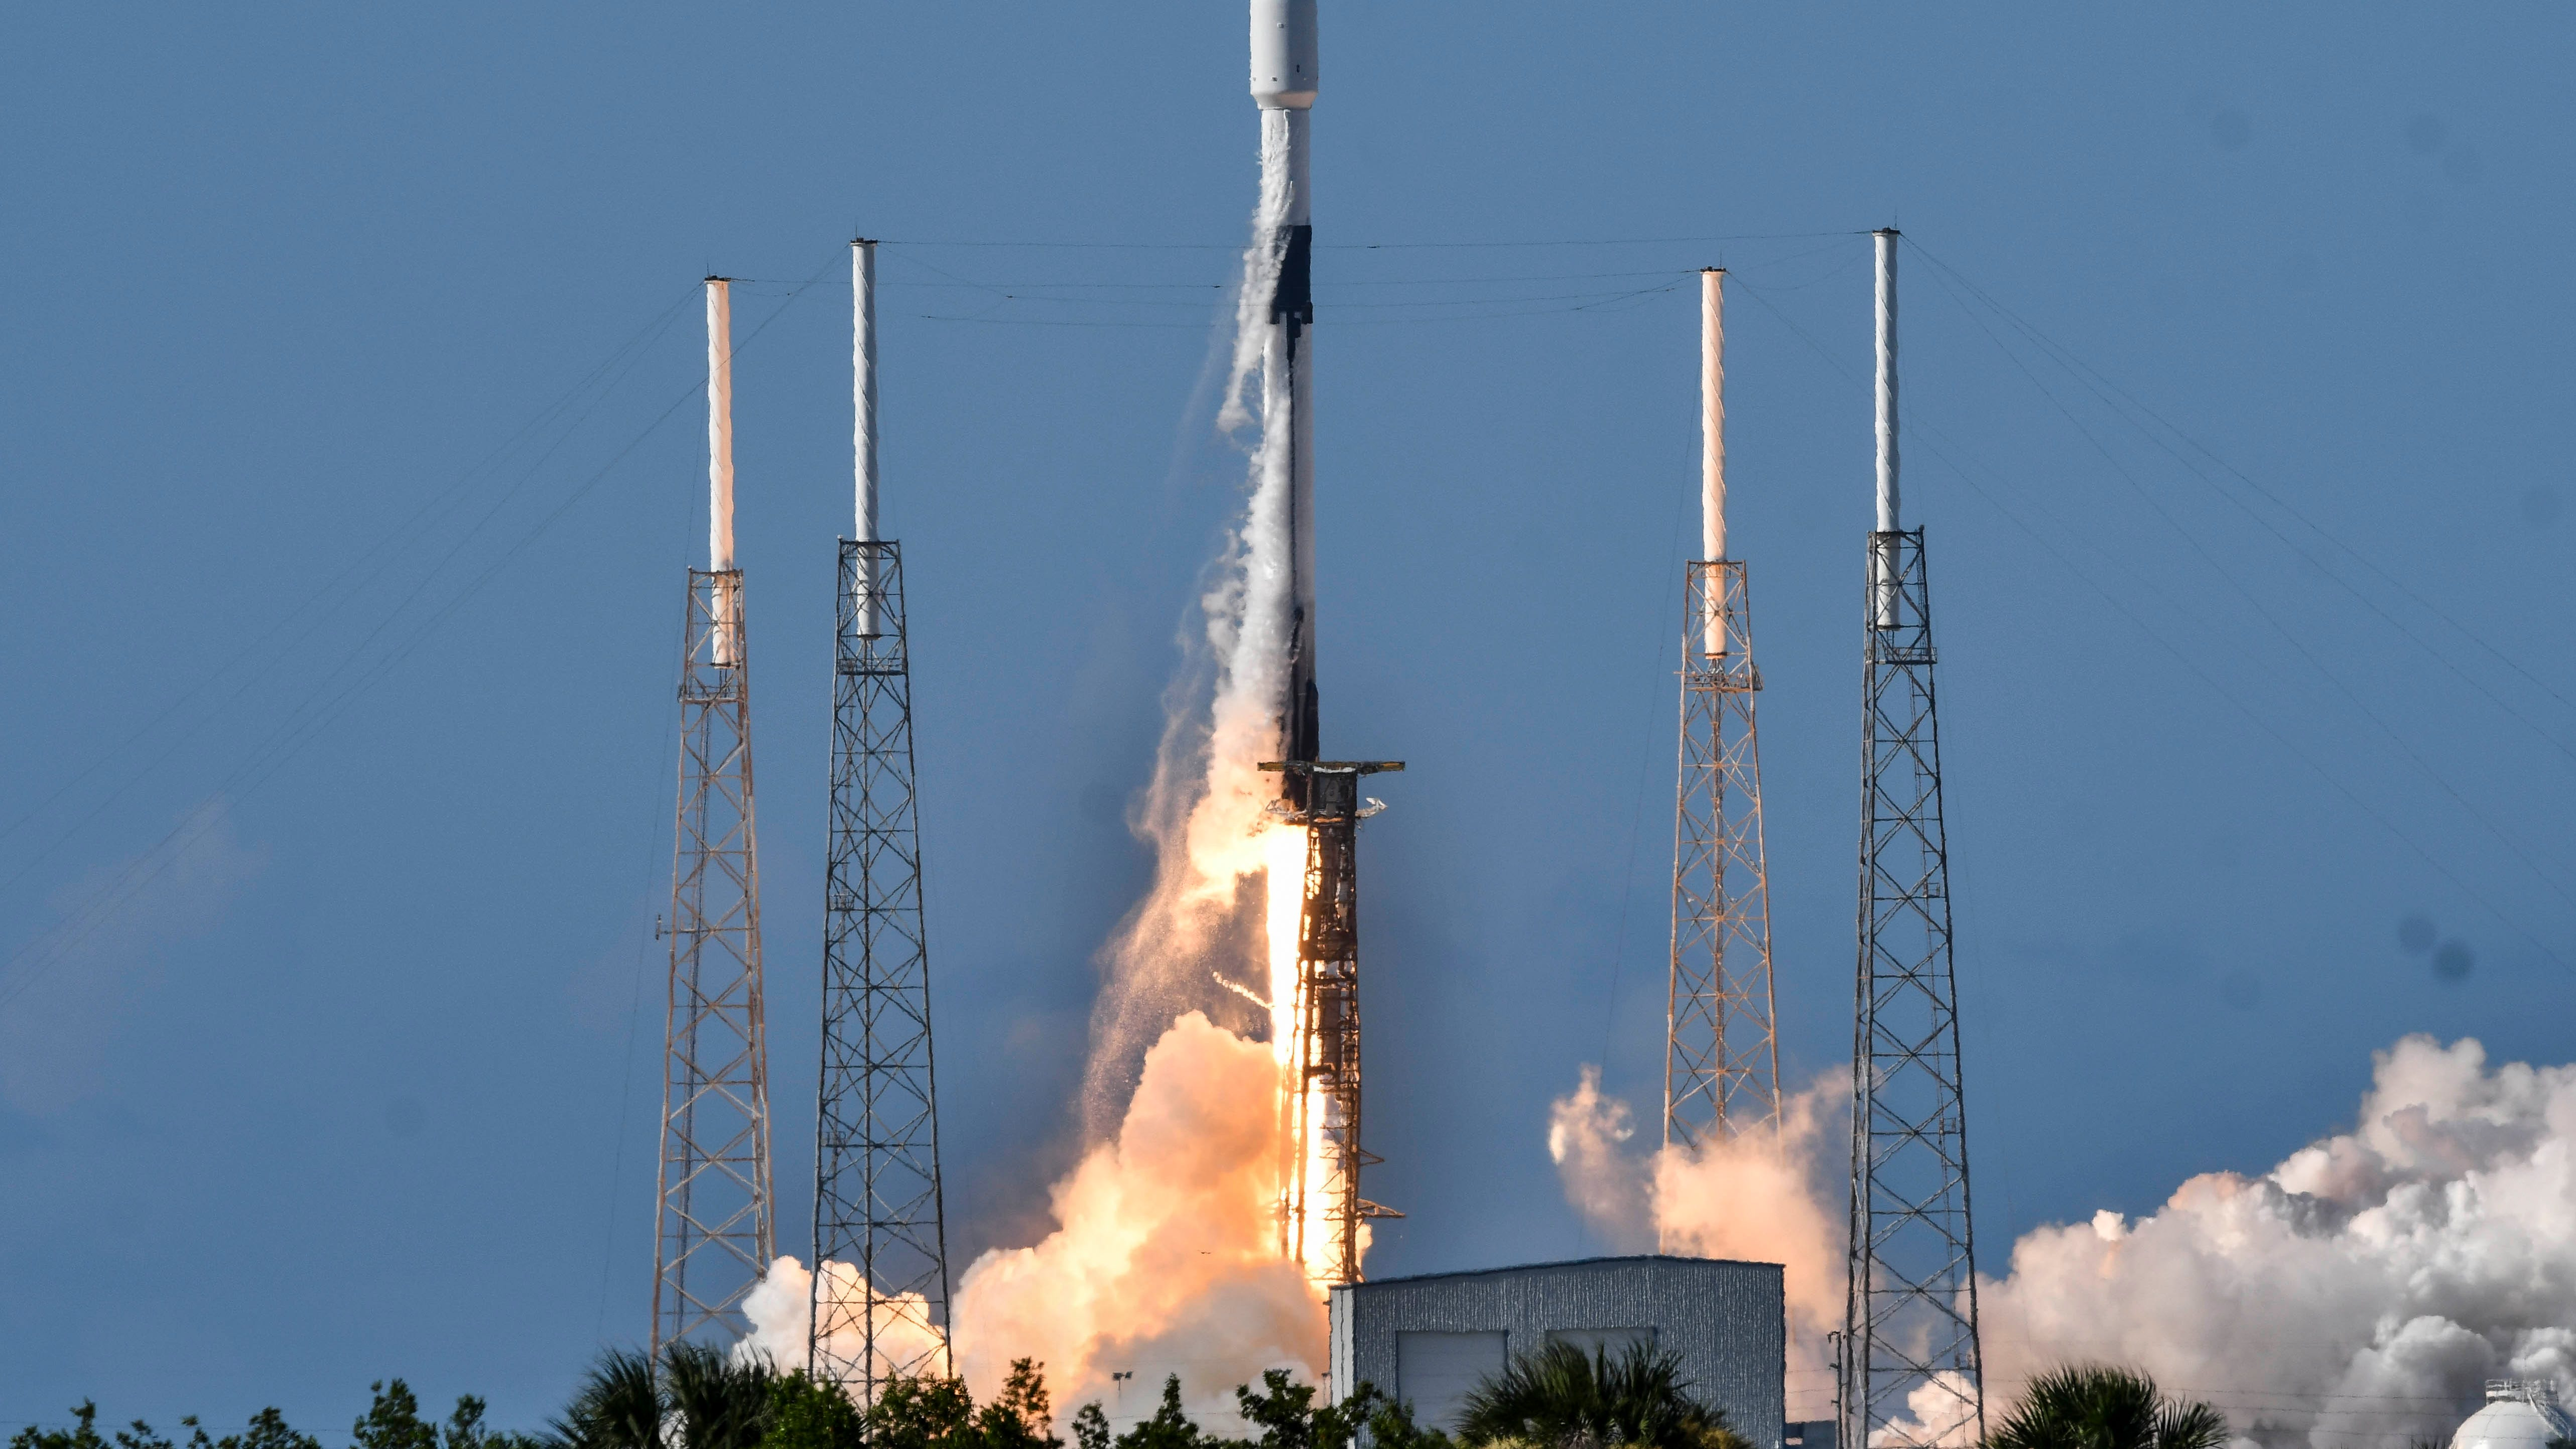 A SpaceX Falcon 9 lifts off from Cape Canaveral Ai